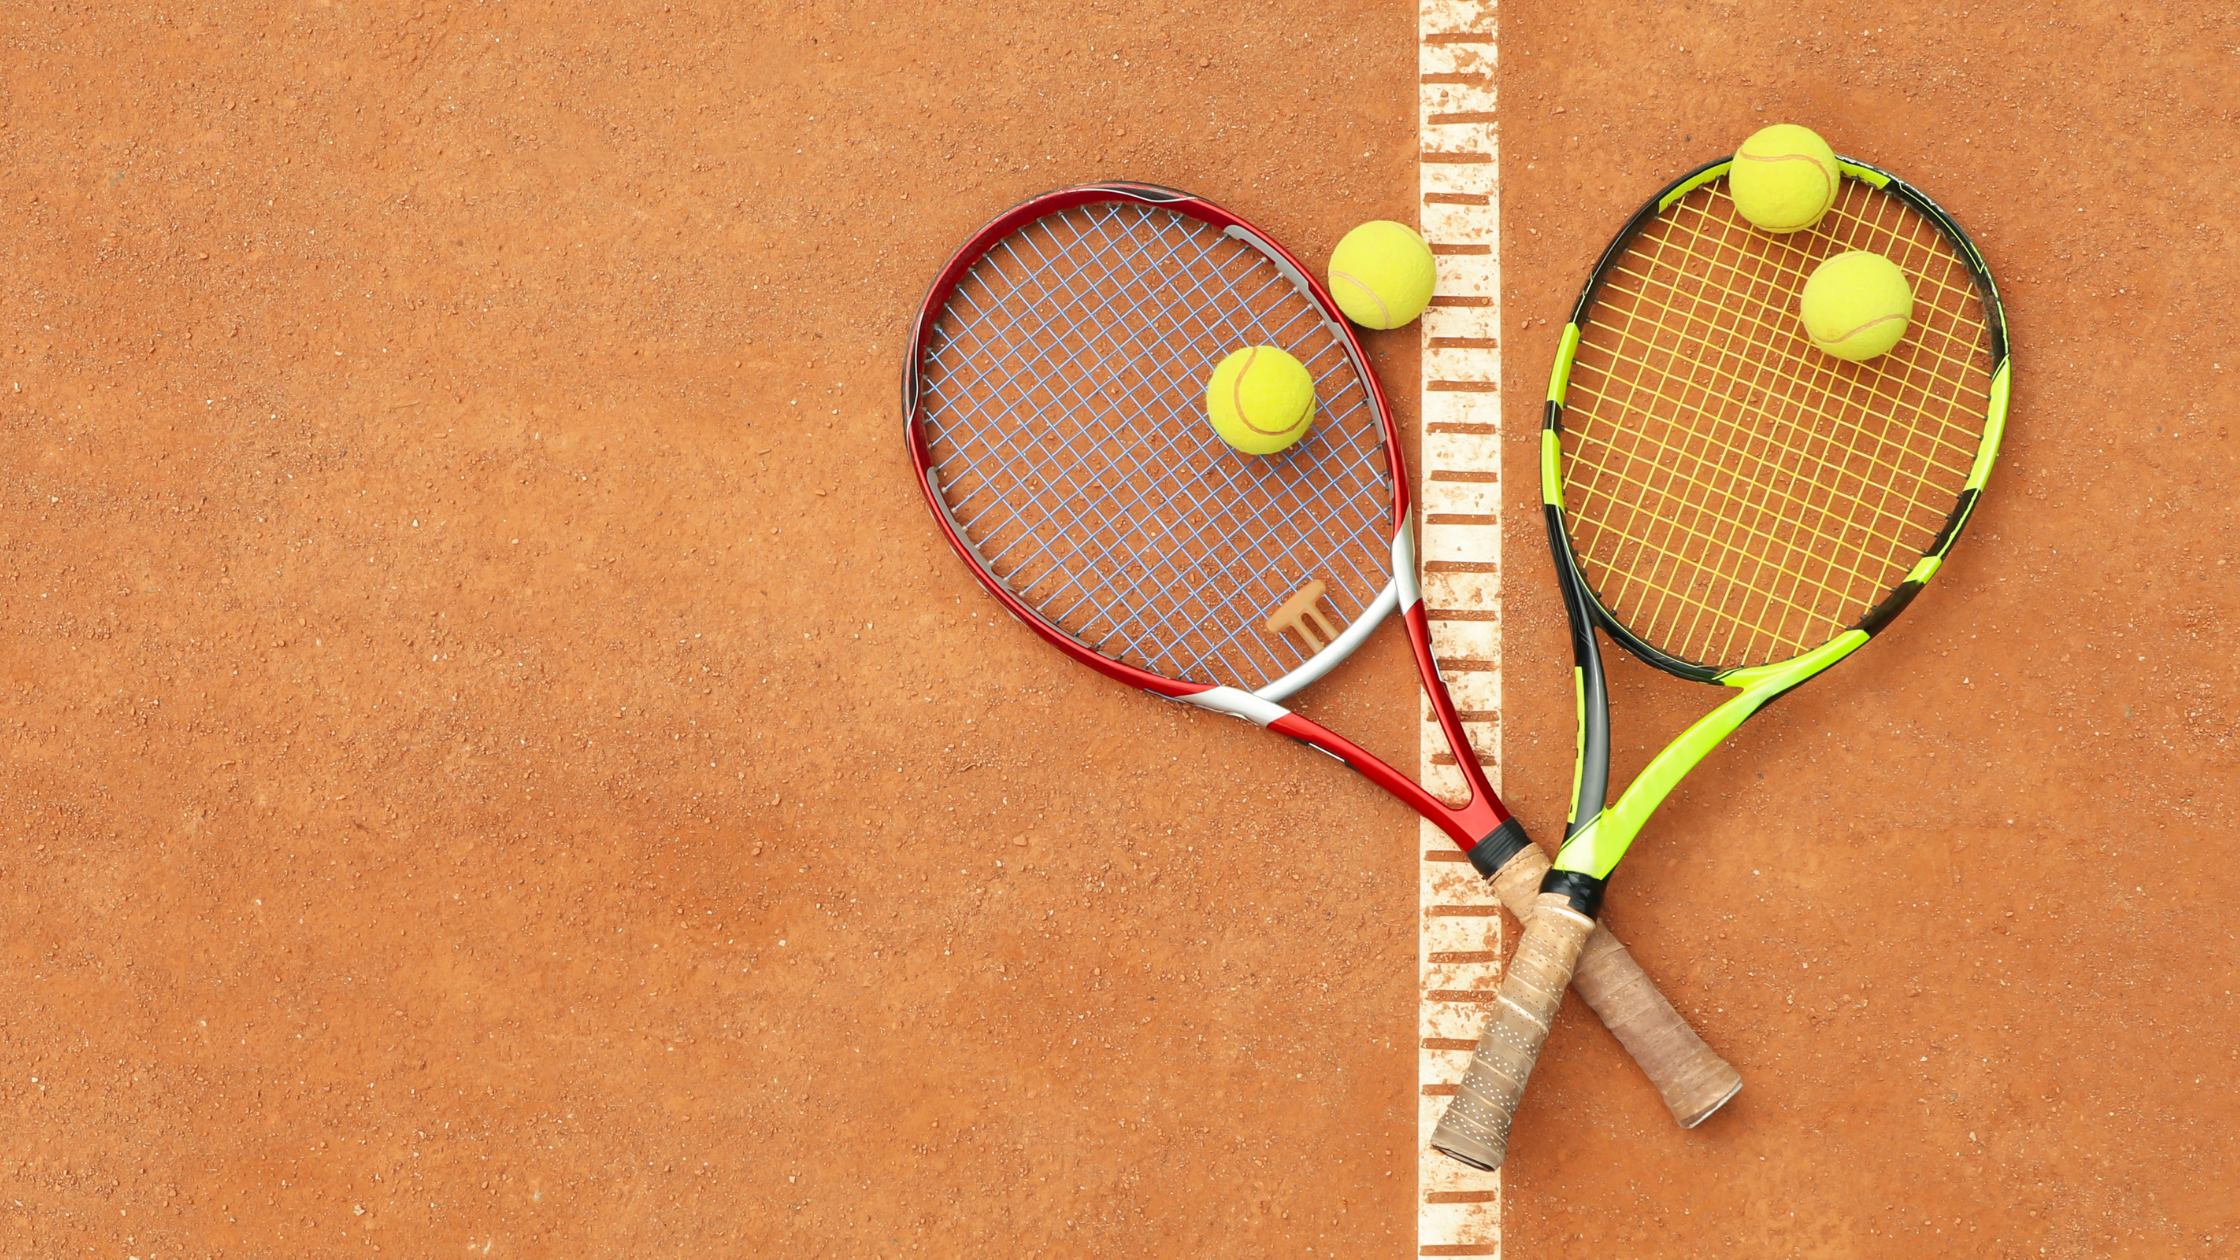 Top 5 tennis rackets 2021 for men and for women